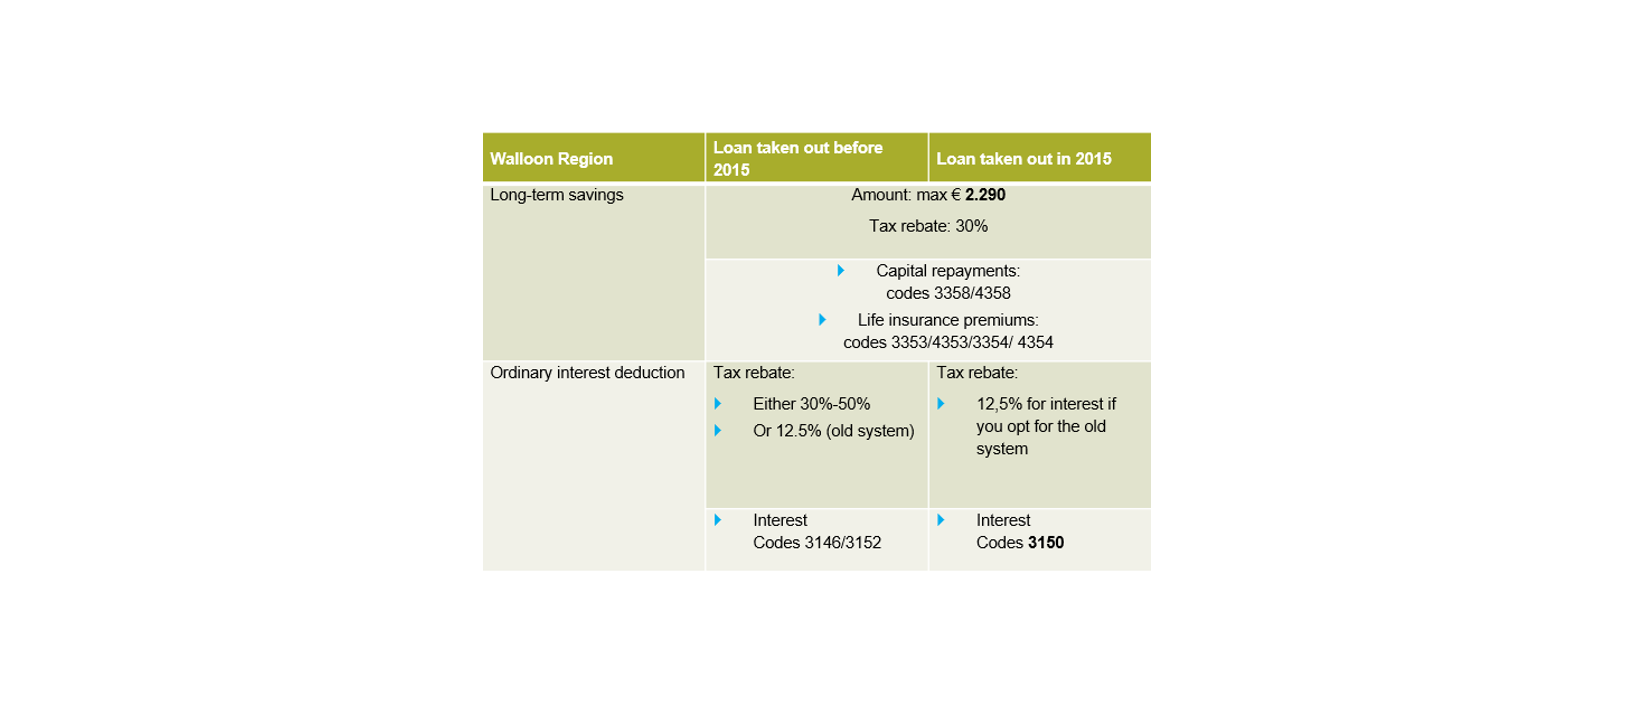 Walloon region Long-term savings and ordinary interest